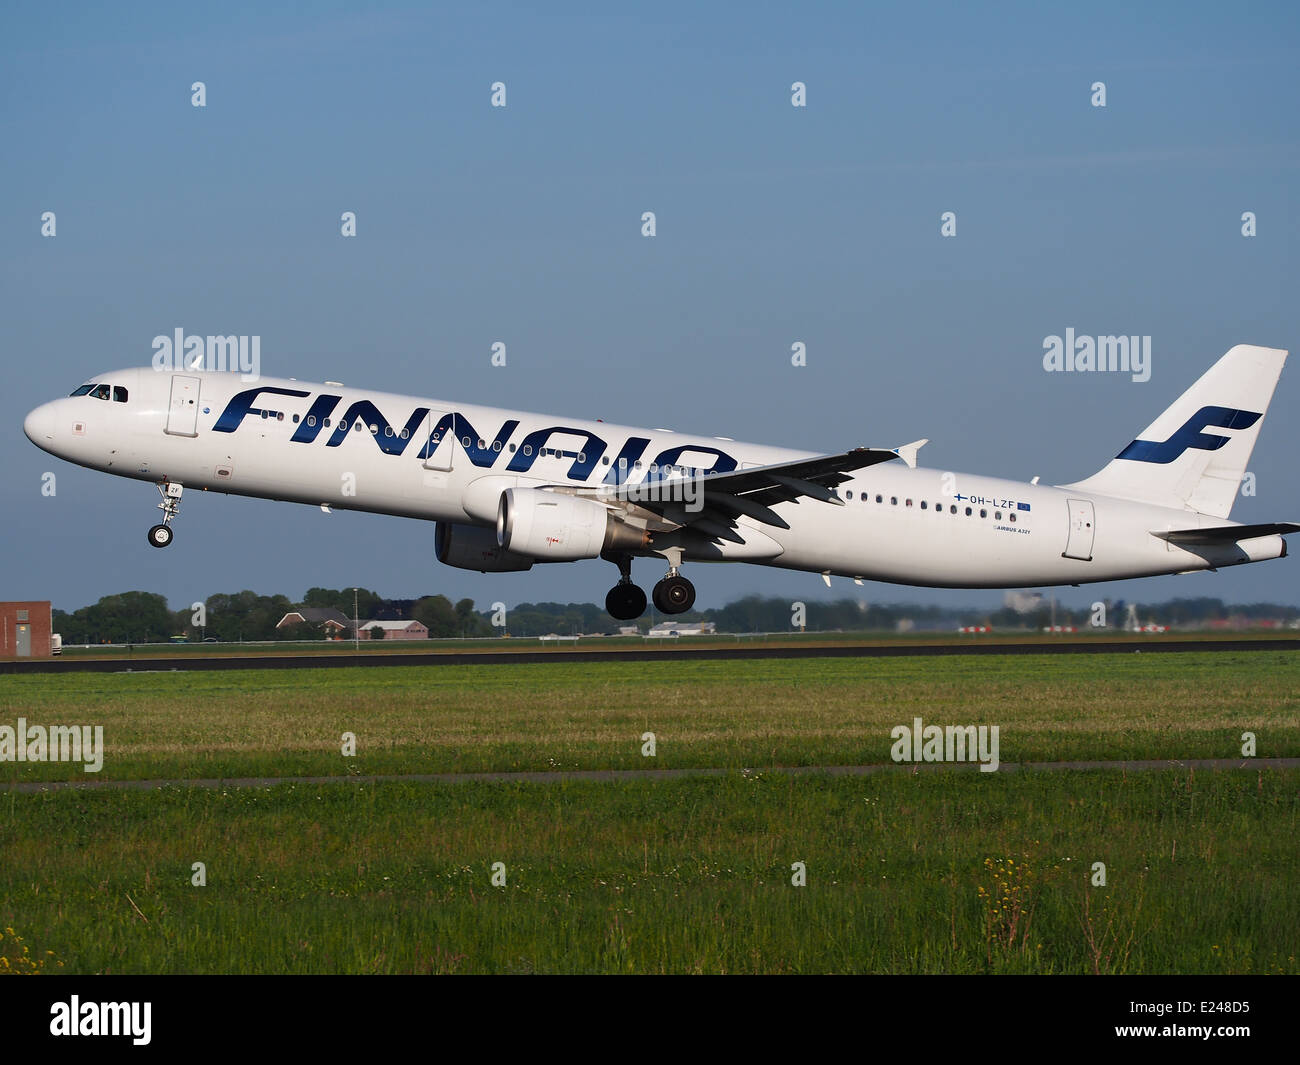 OH-LZF Finnair Airbus A321 takeoff from Schiphol (AMS - EHAM), The Netherlands, 16may2014, pic-1 - Stock Image